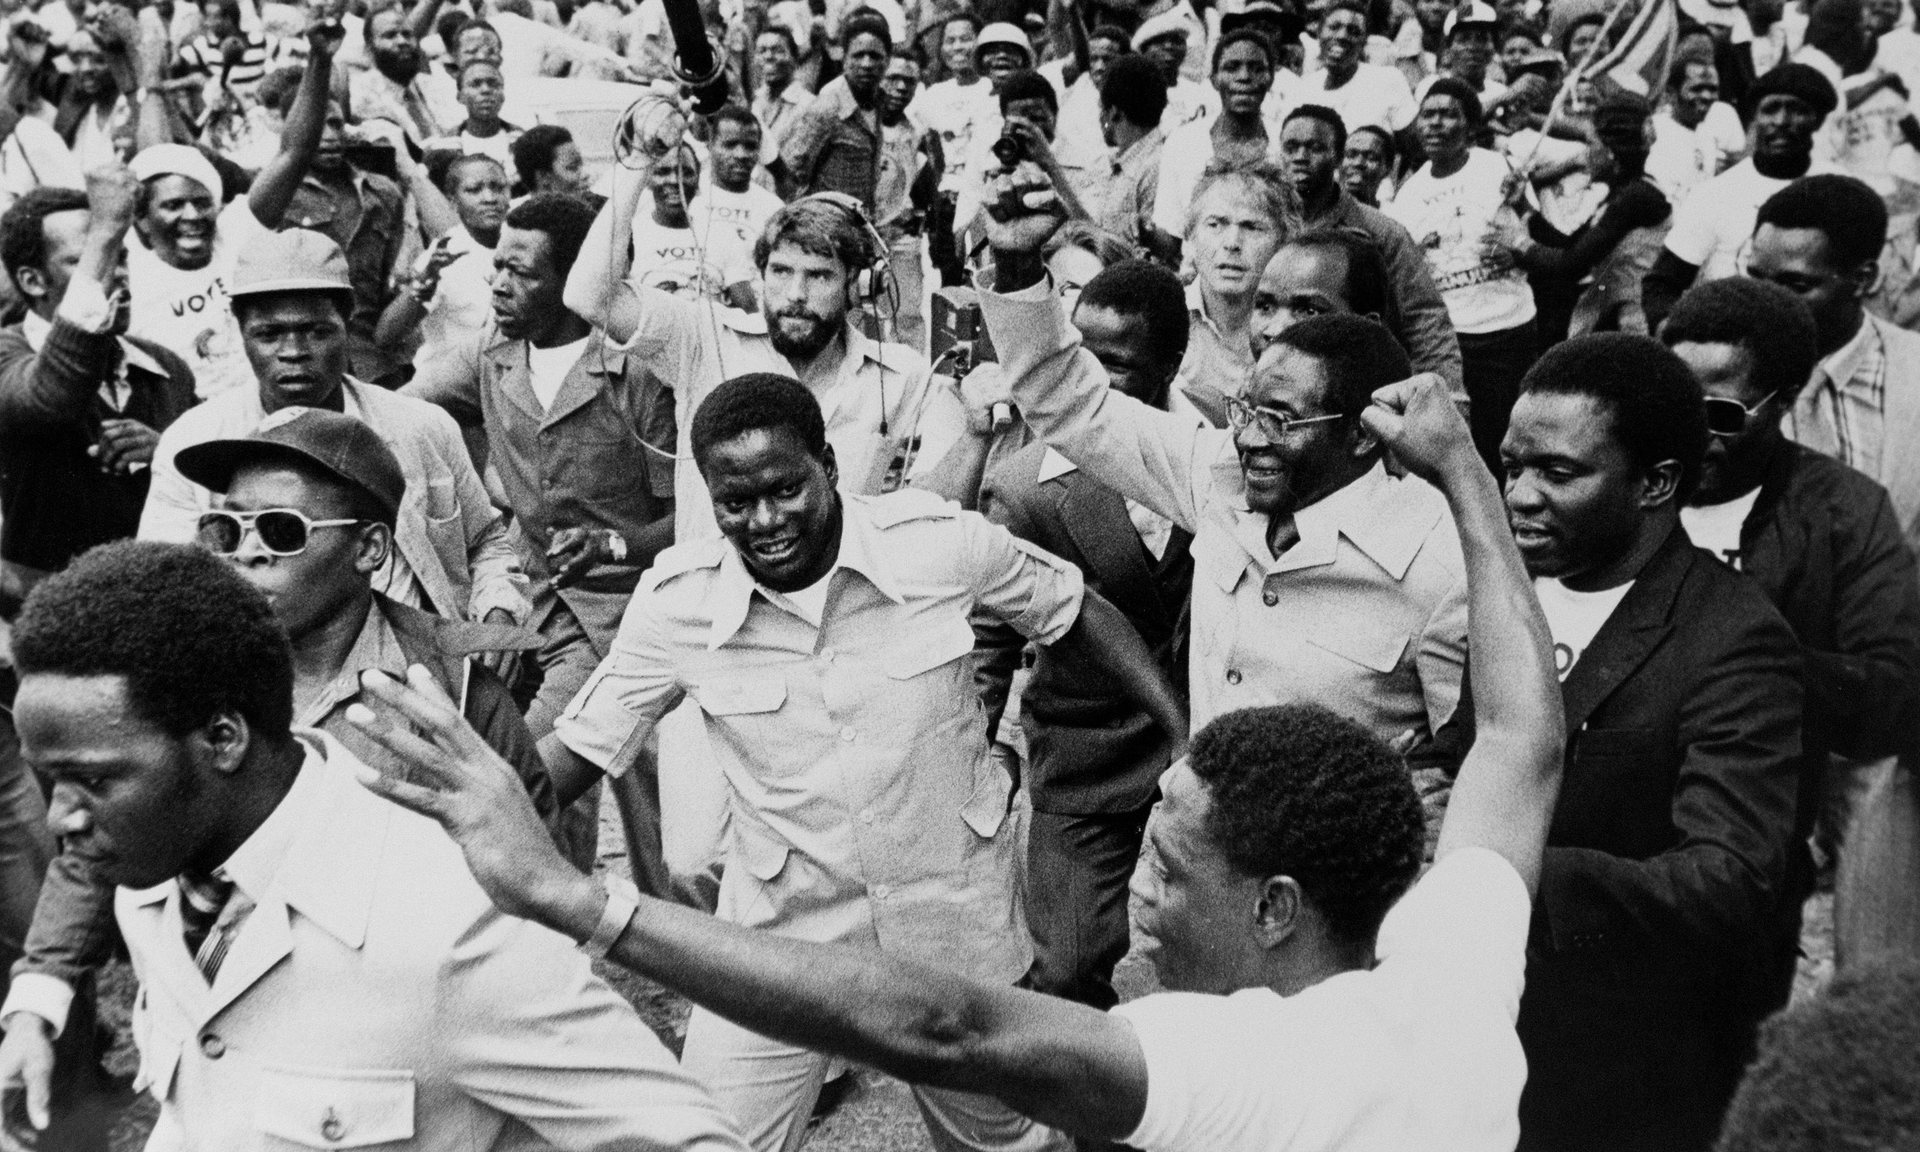 Robert Mugabe emerges from exile at Harare Fields, 1980. Photograph: Brian Harris / Rex Features